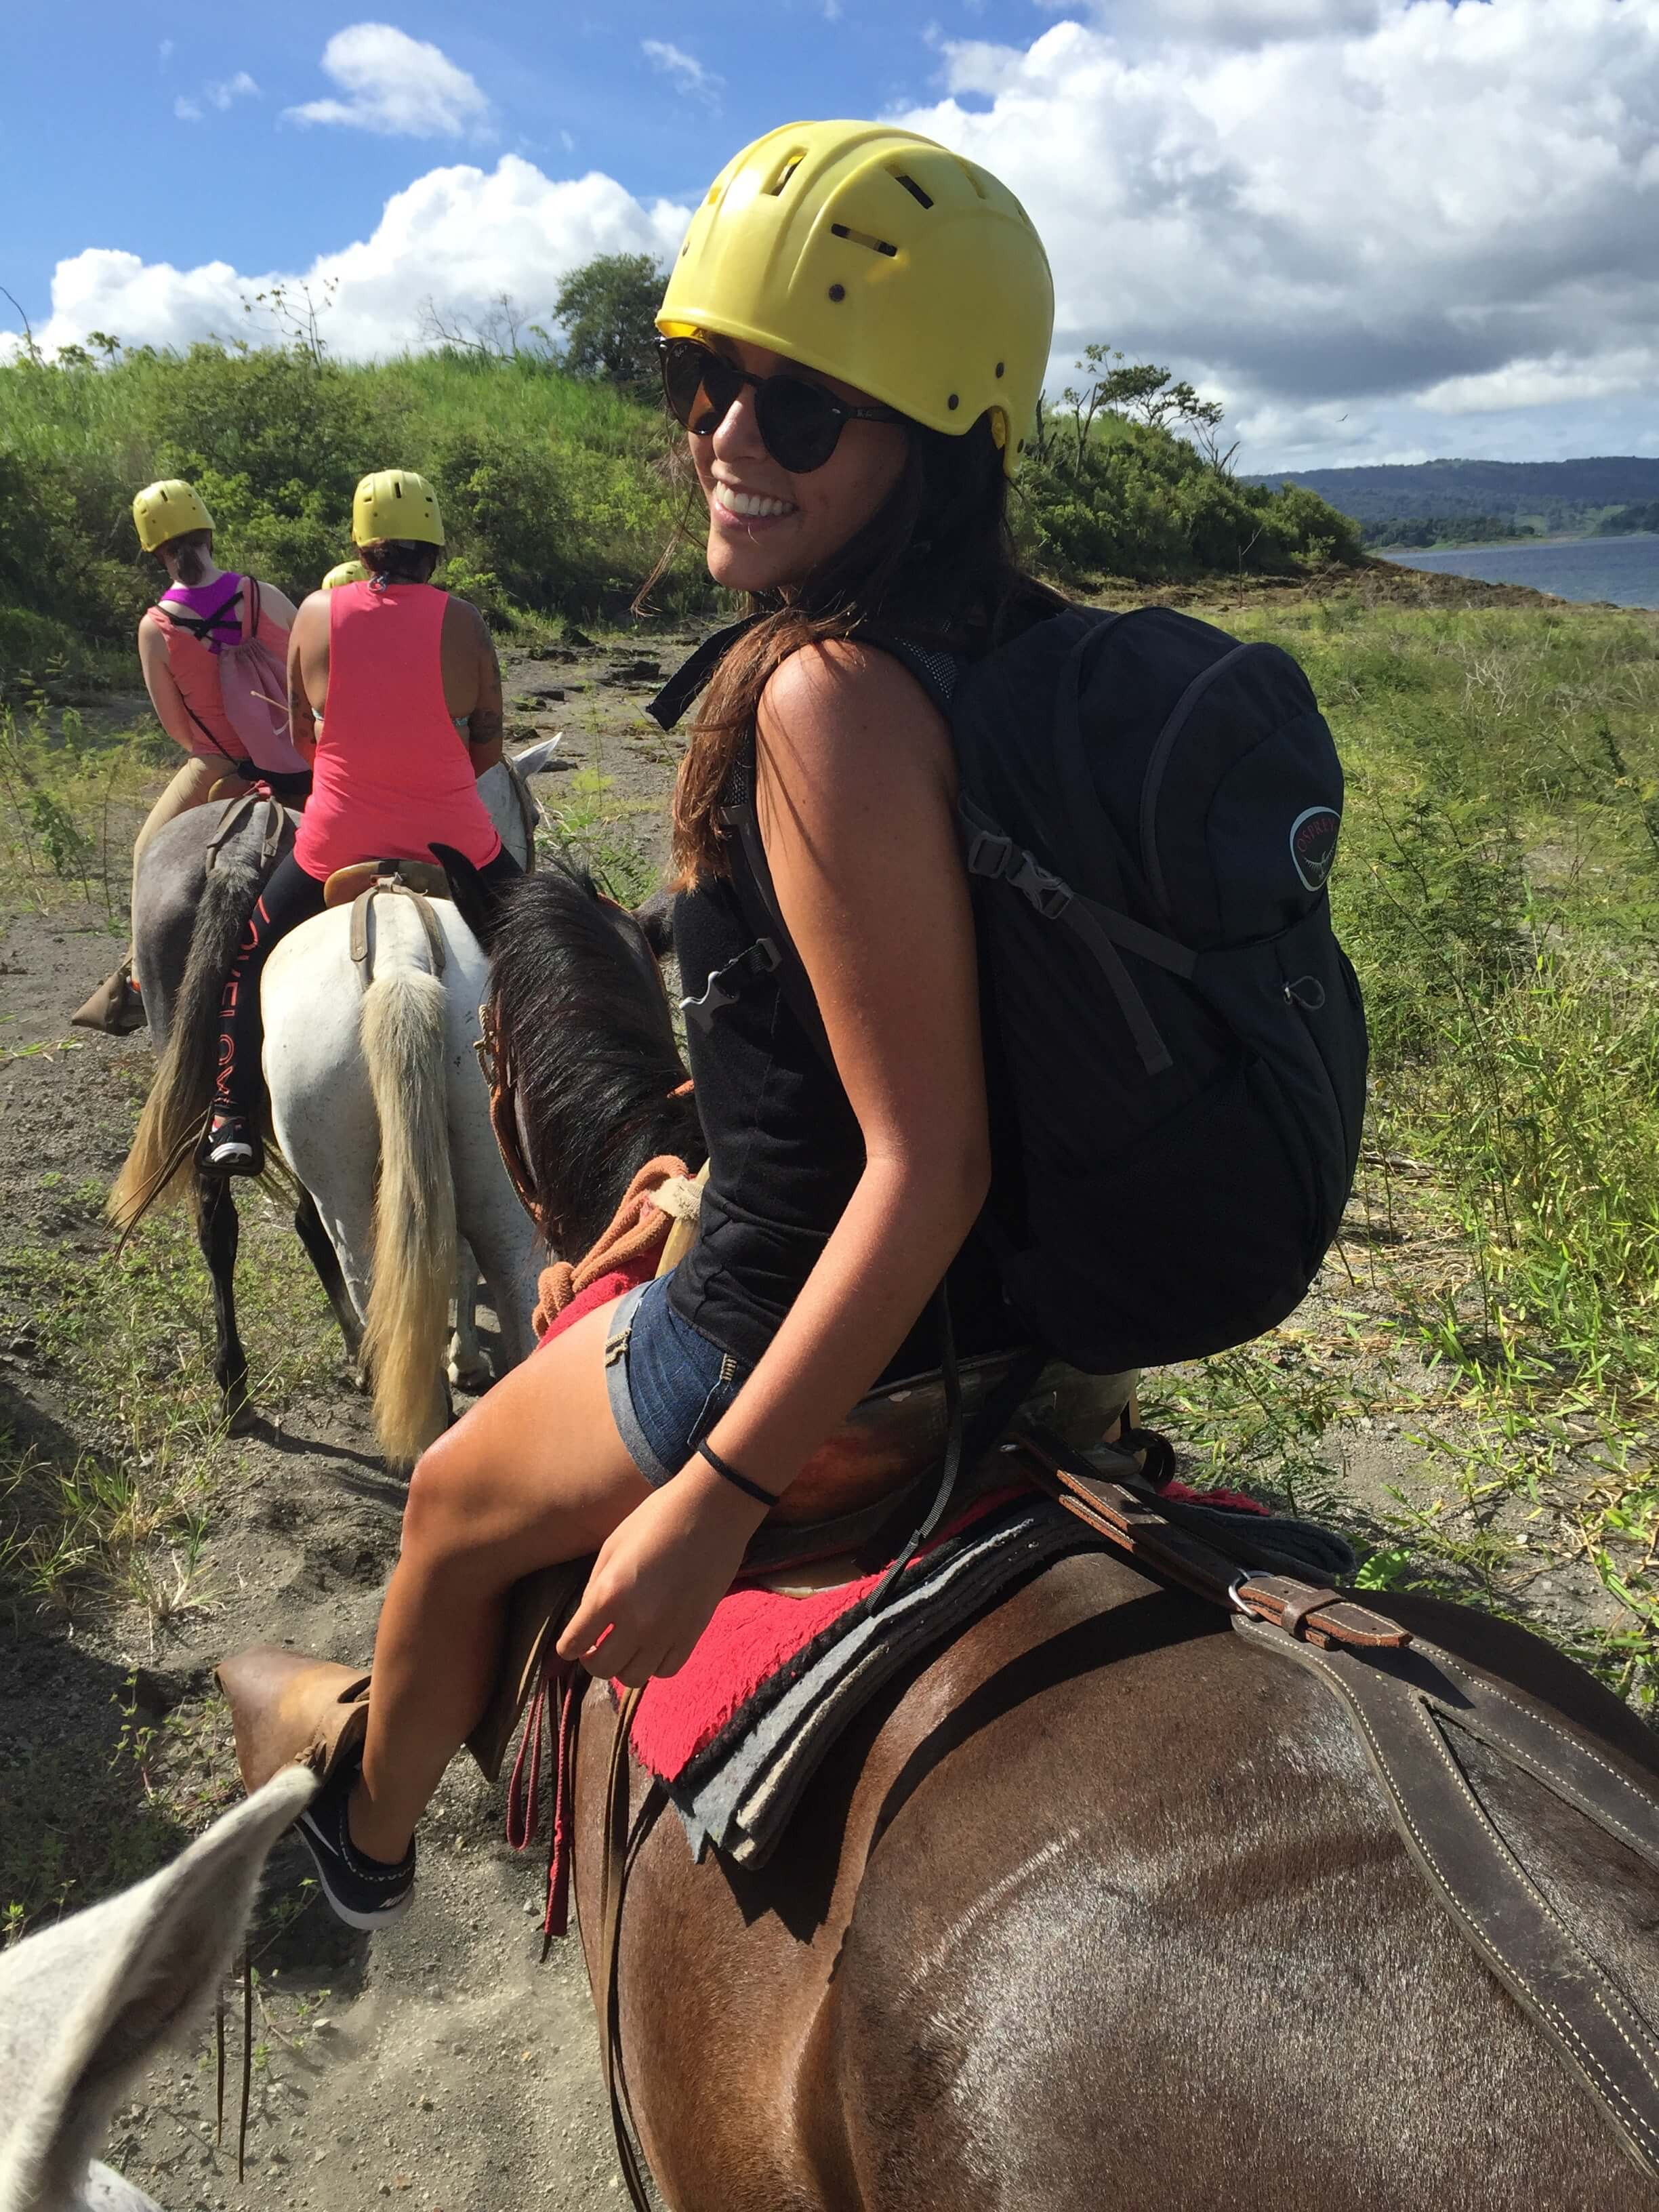 blog-be-the-change-you-wish-to-see-horseback-riding-costa-rica